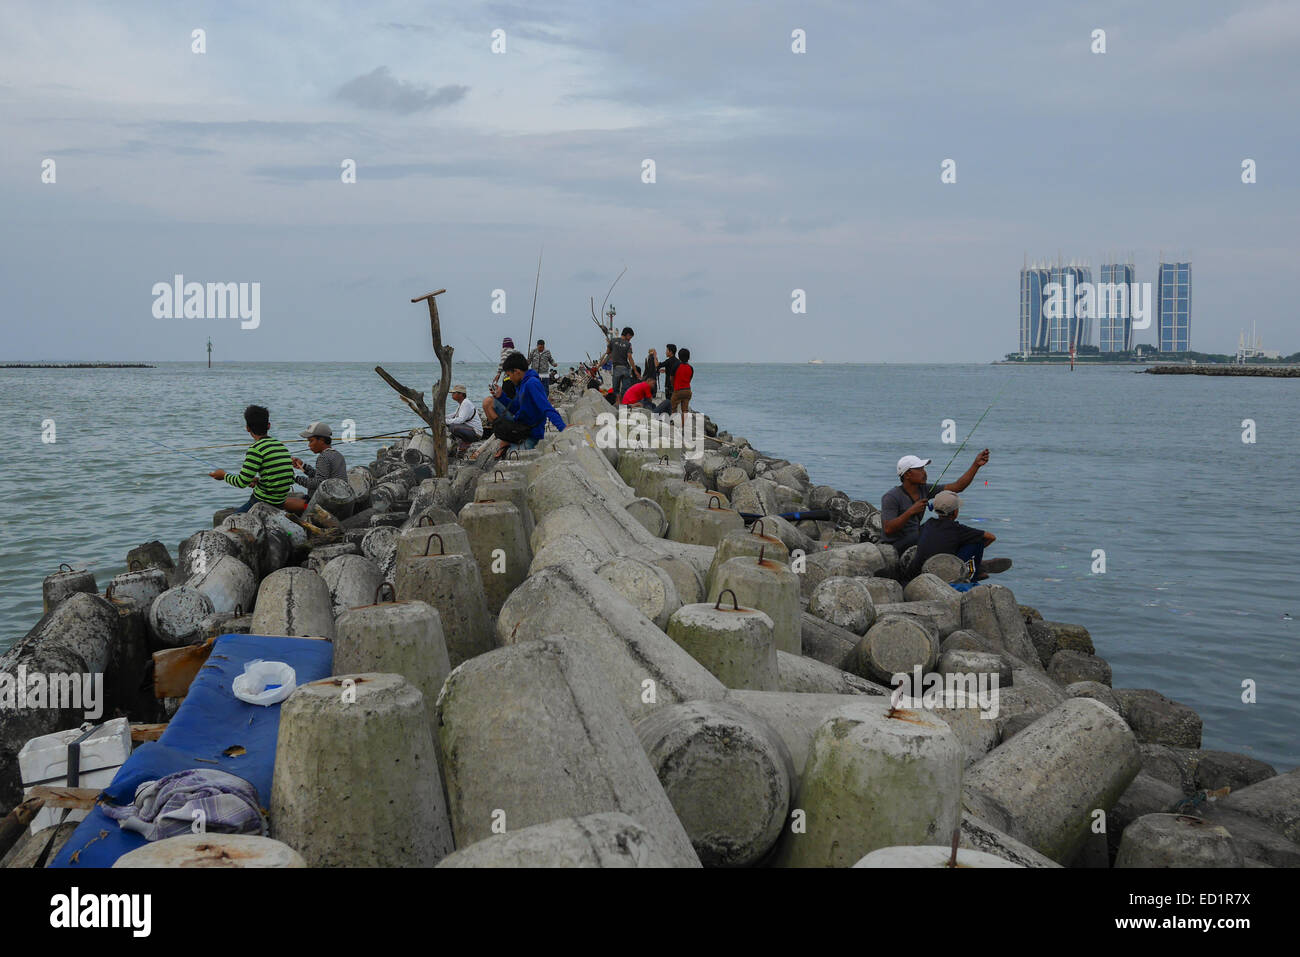 People fishing on tetrapod structures at Muara Angke's groin, North Jakarta. - Stock Image